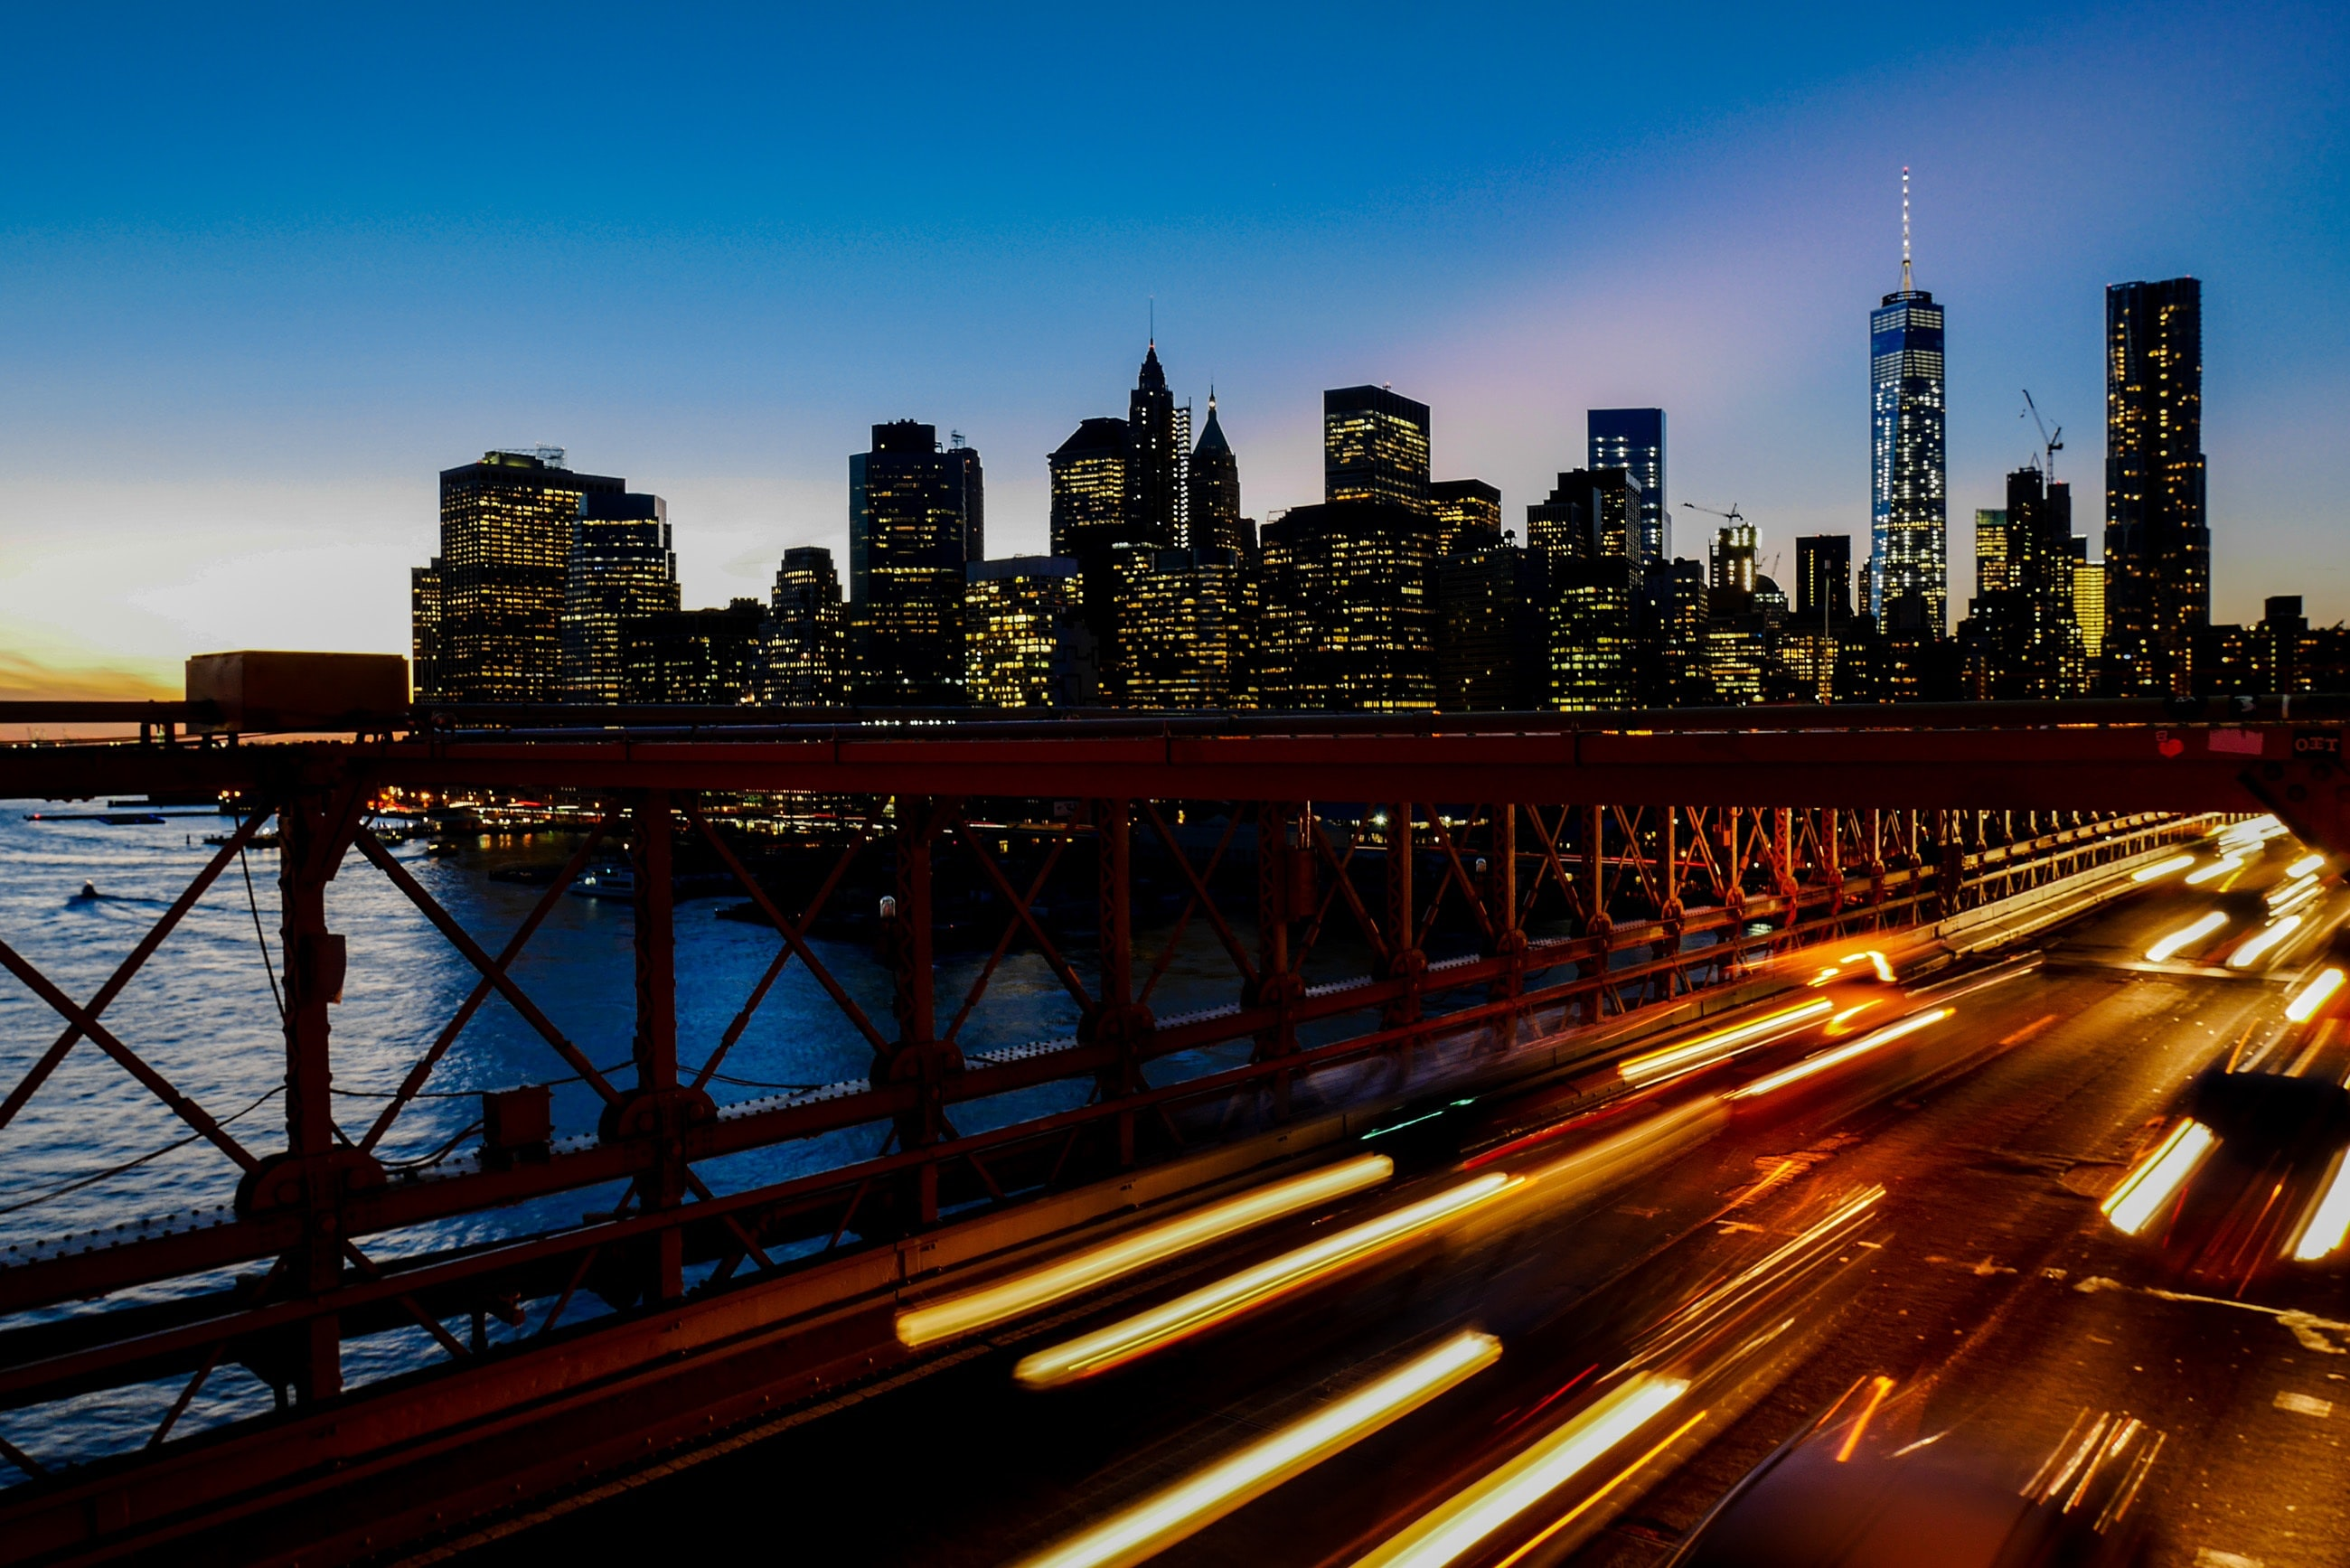 A long-exposure shot of light trails on the freeway with the New York city skyline at the back